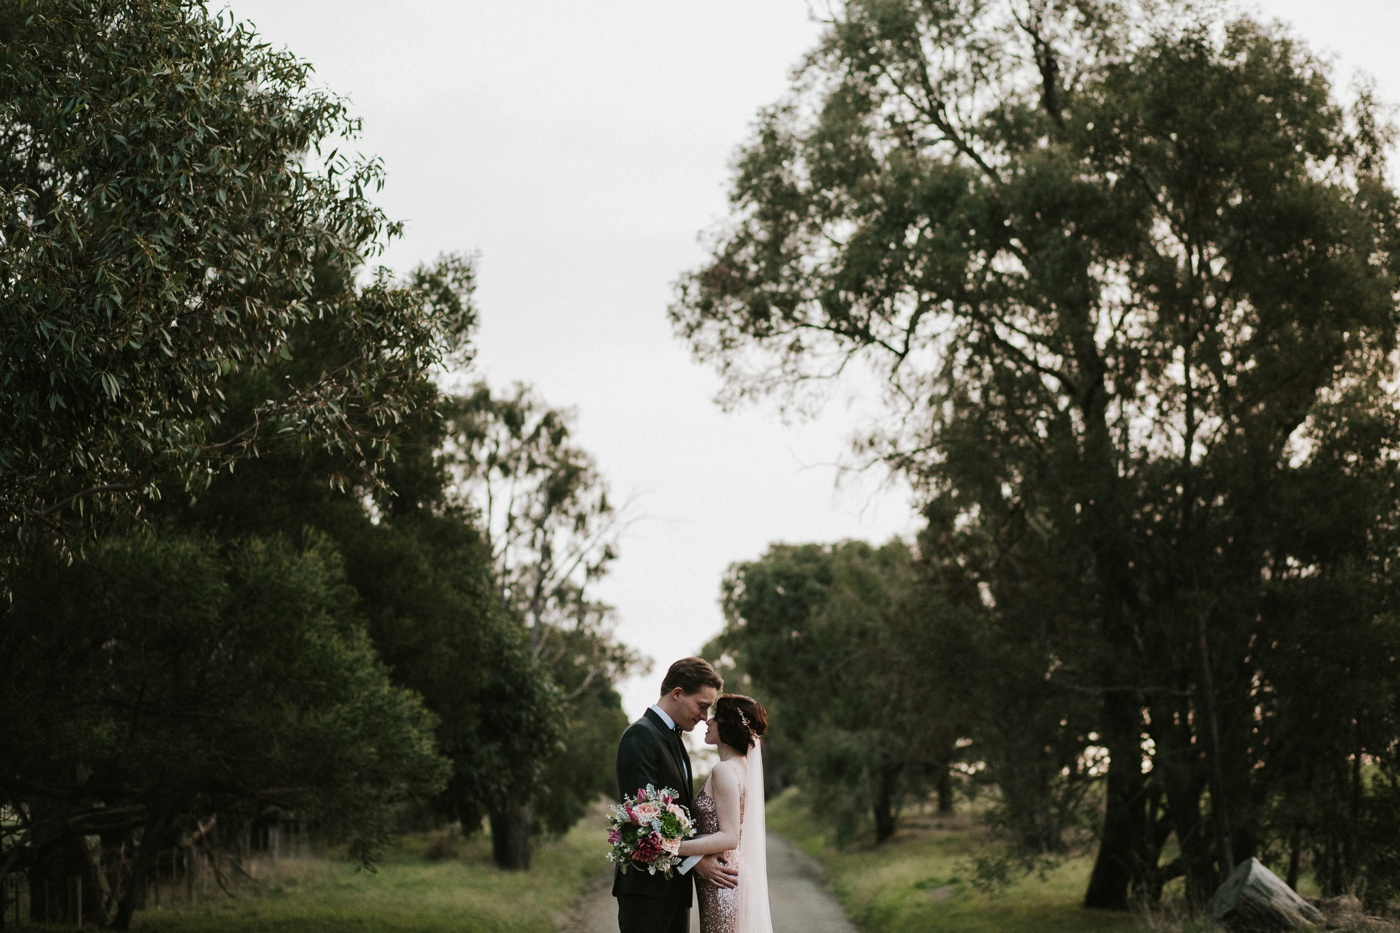 Emma&Morgan_Melbourne-Vintage-Elegant-Fun-Quirky-Yarra-Valley-Vineyard-Wedding_Melbourne-Wedding-Photography-73